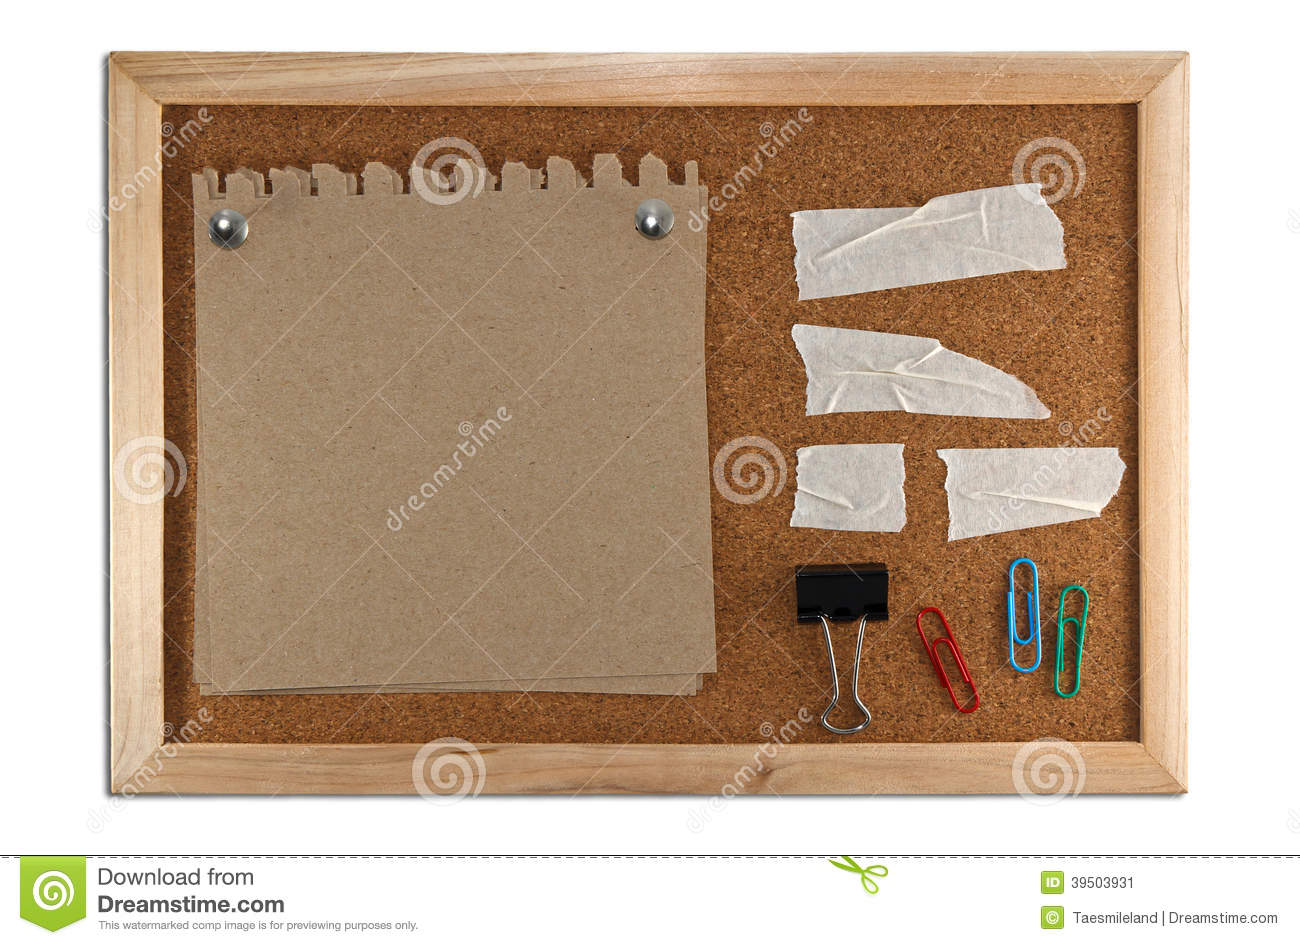 Download Blank Memo Notes On Cork Board Stock Image - Image of notebook, blank: 39503931